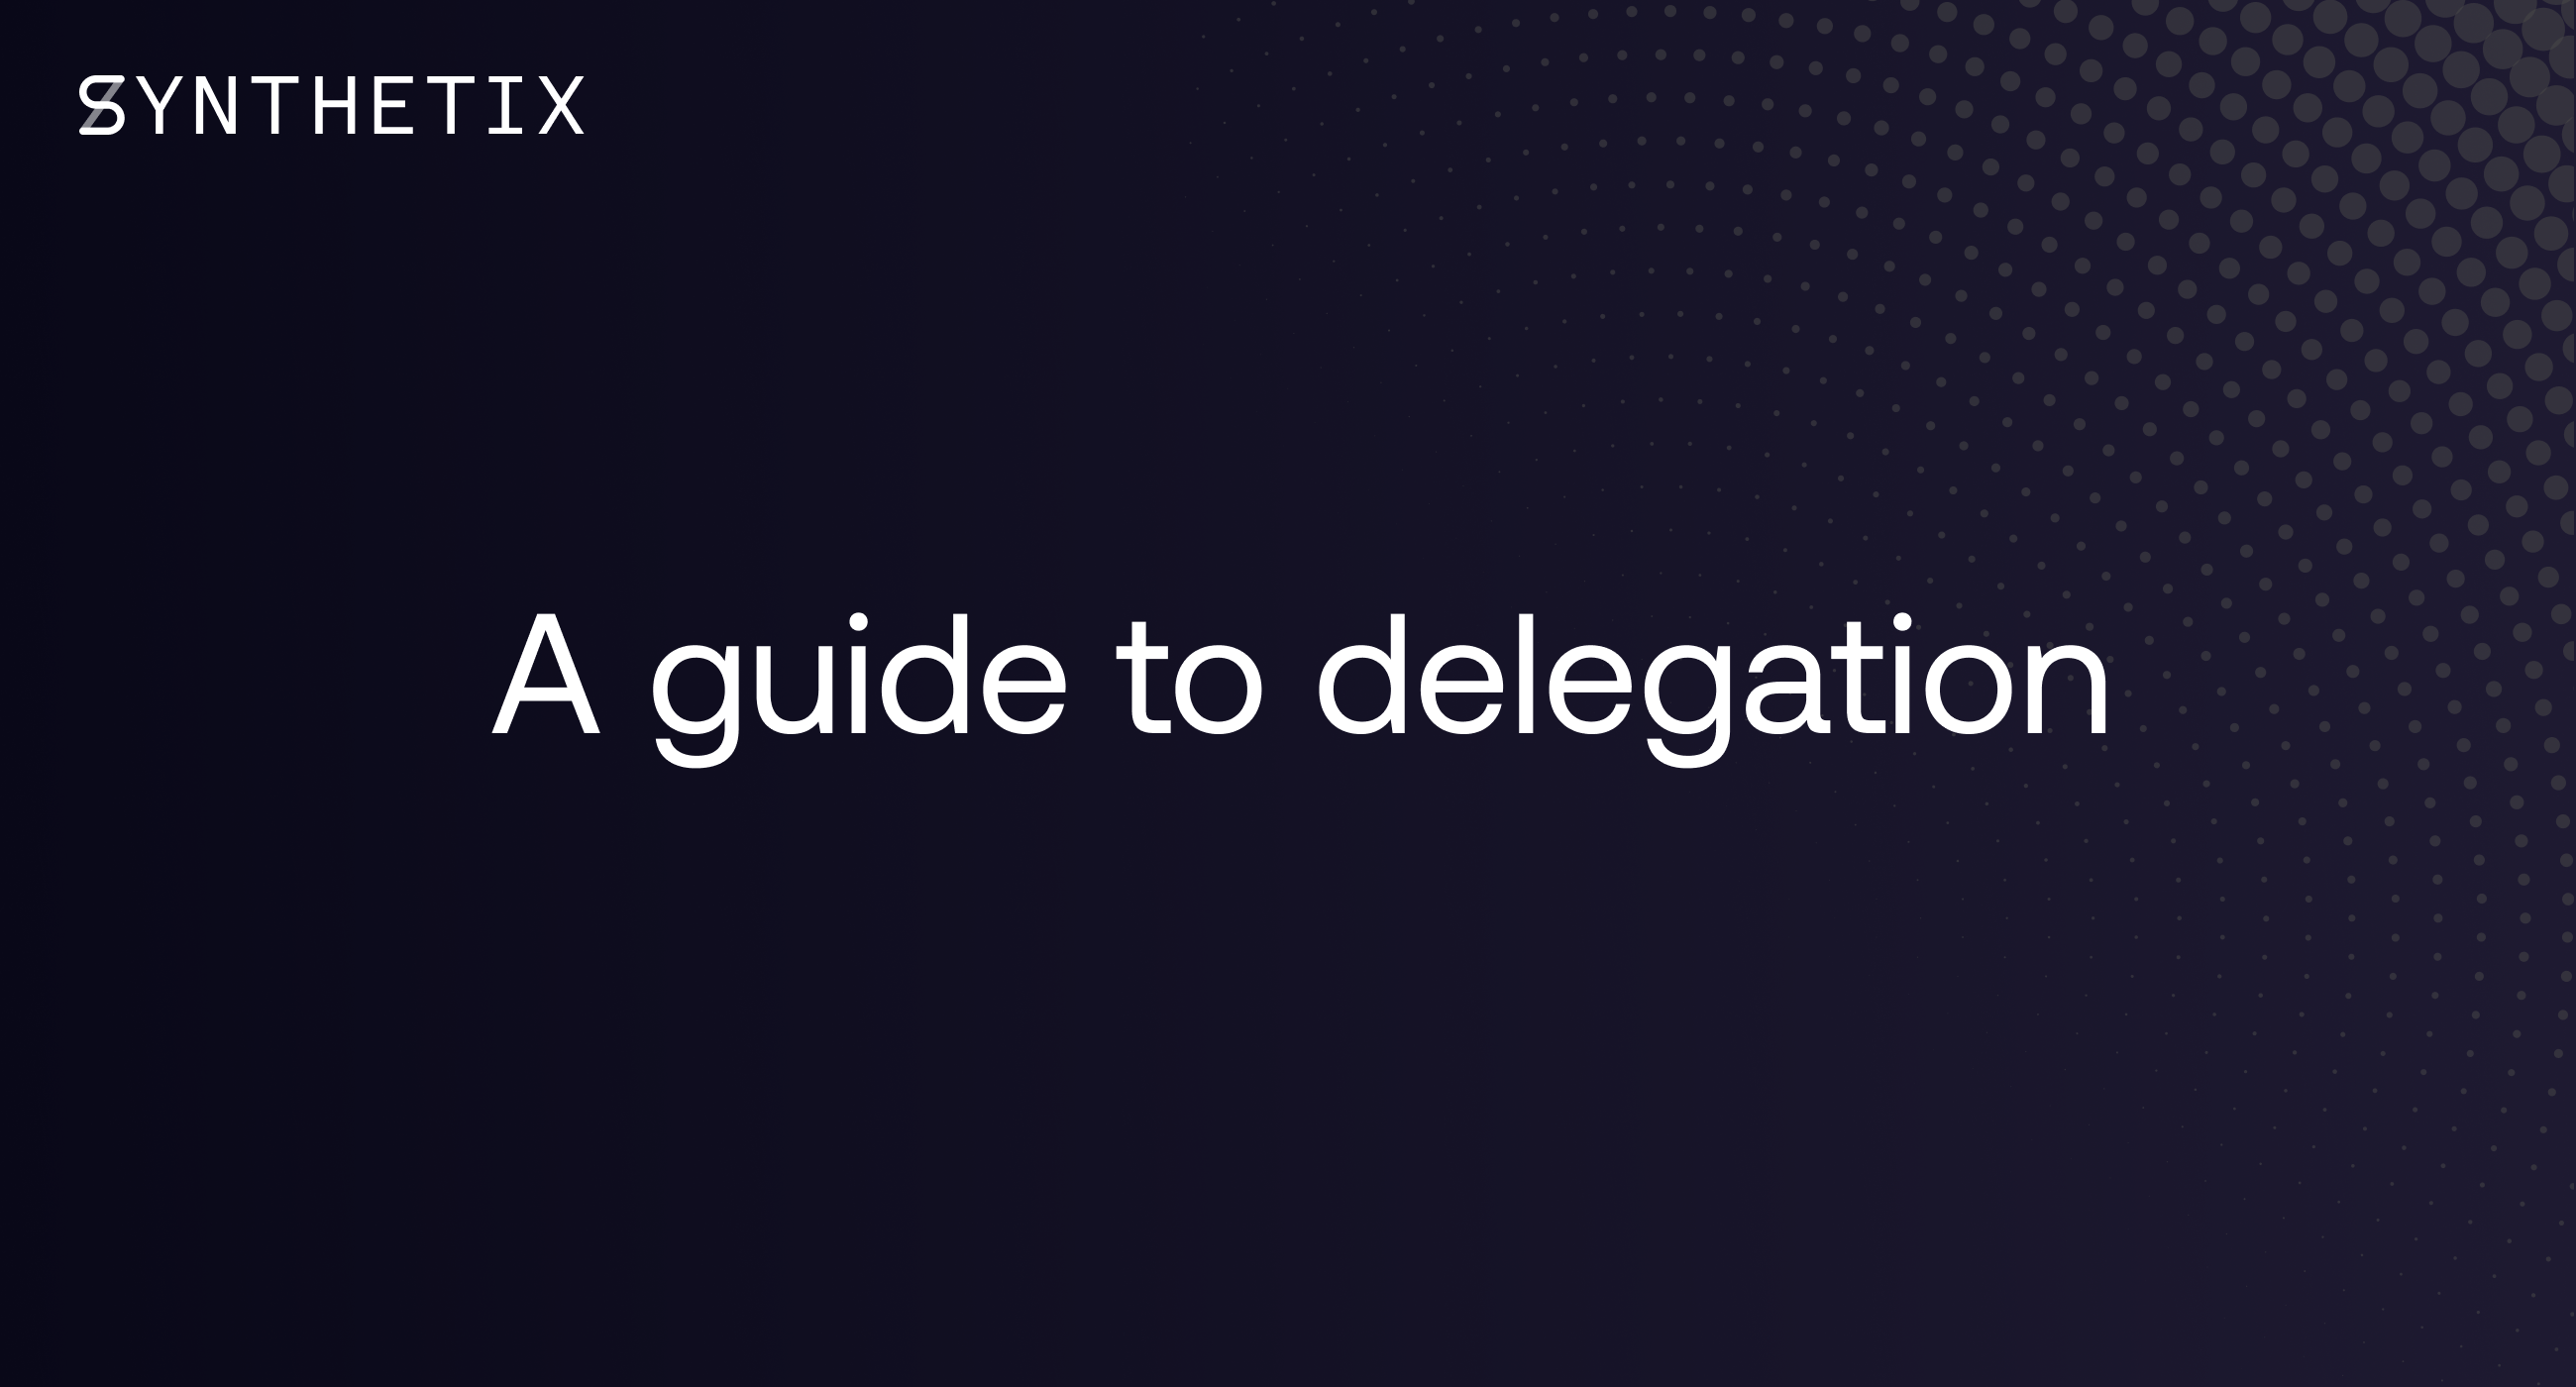 A guide to delegation